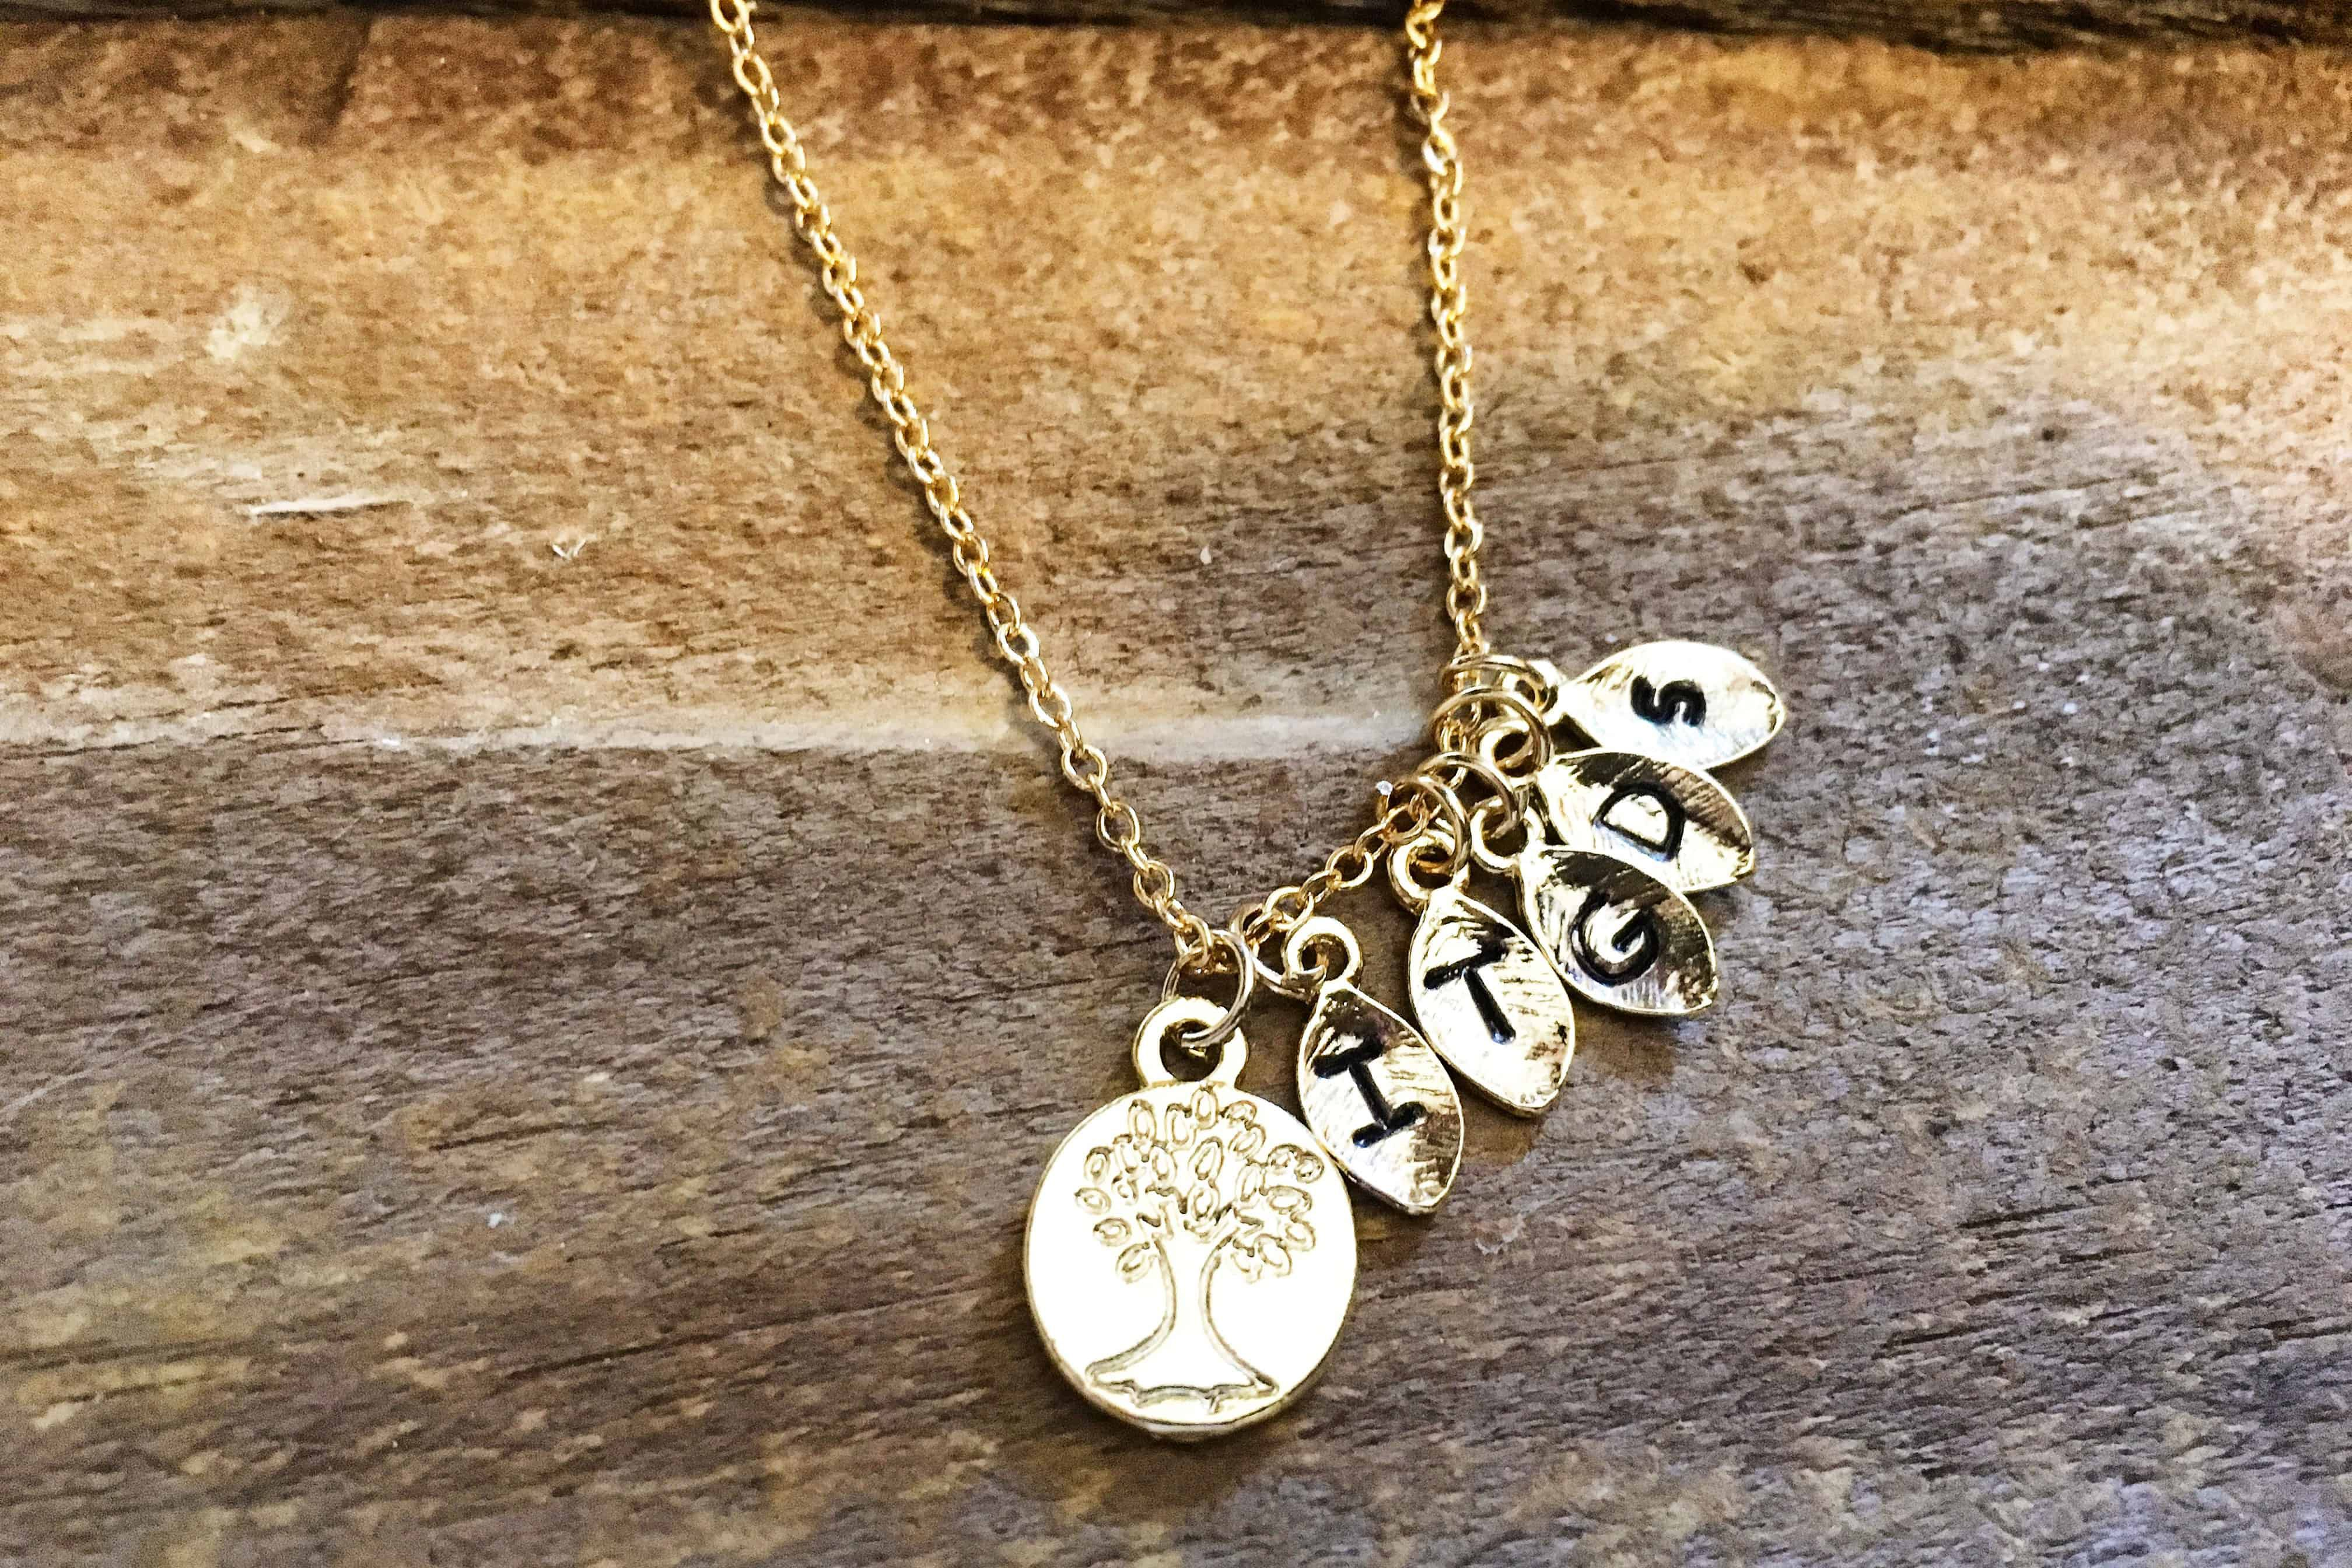 Family tree Gold necklace, starting at $17